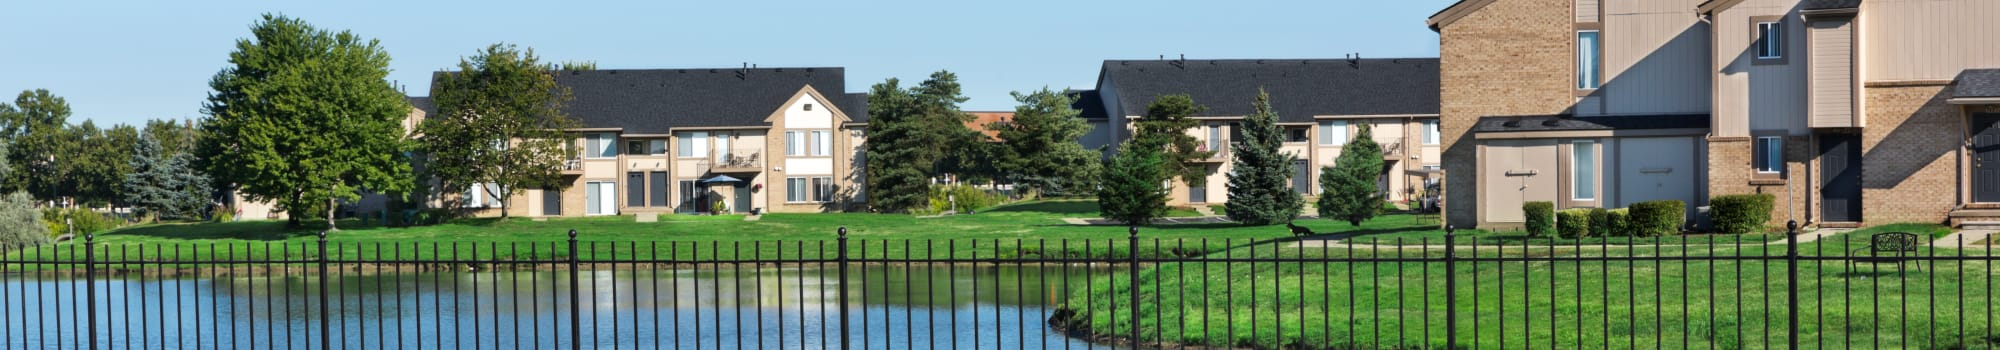 Neighborhood at Lakeside Terraces in Sterling Heights, Michigan